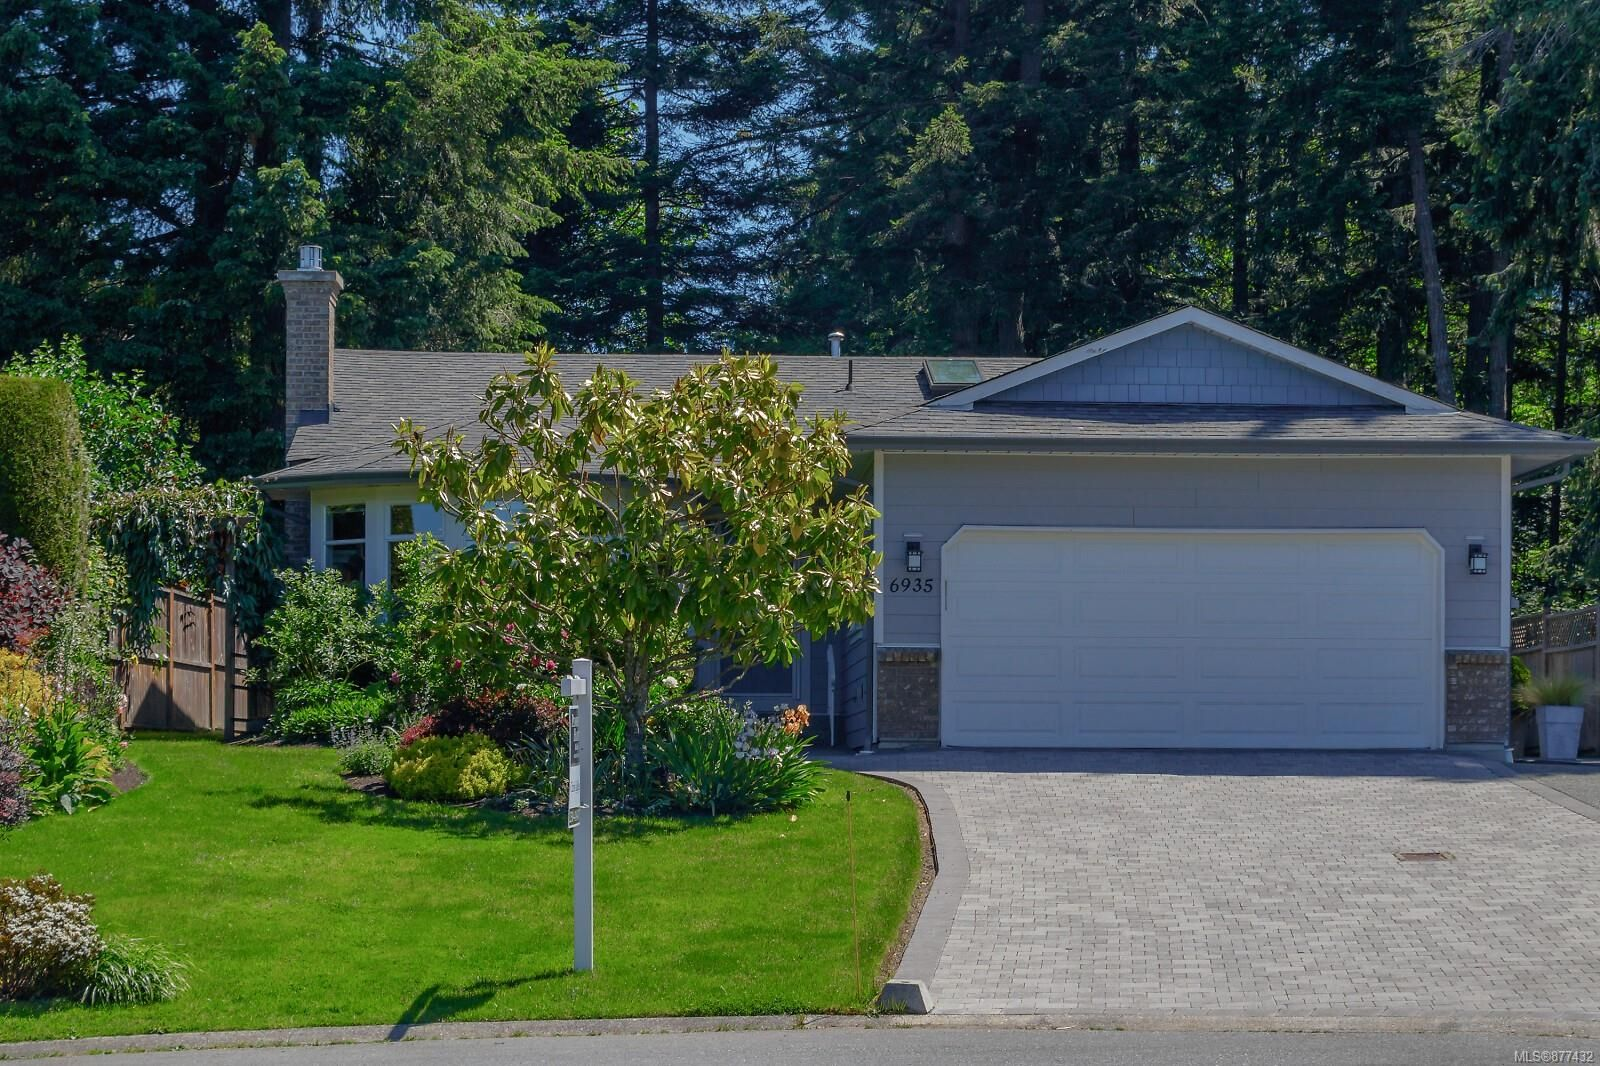 Main Photo: 6935 Shiner Pl in : CS Brentwood Bay House for sale (Central Saanich)  : MLS®# 877432